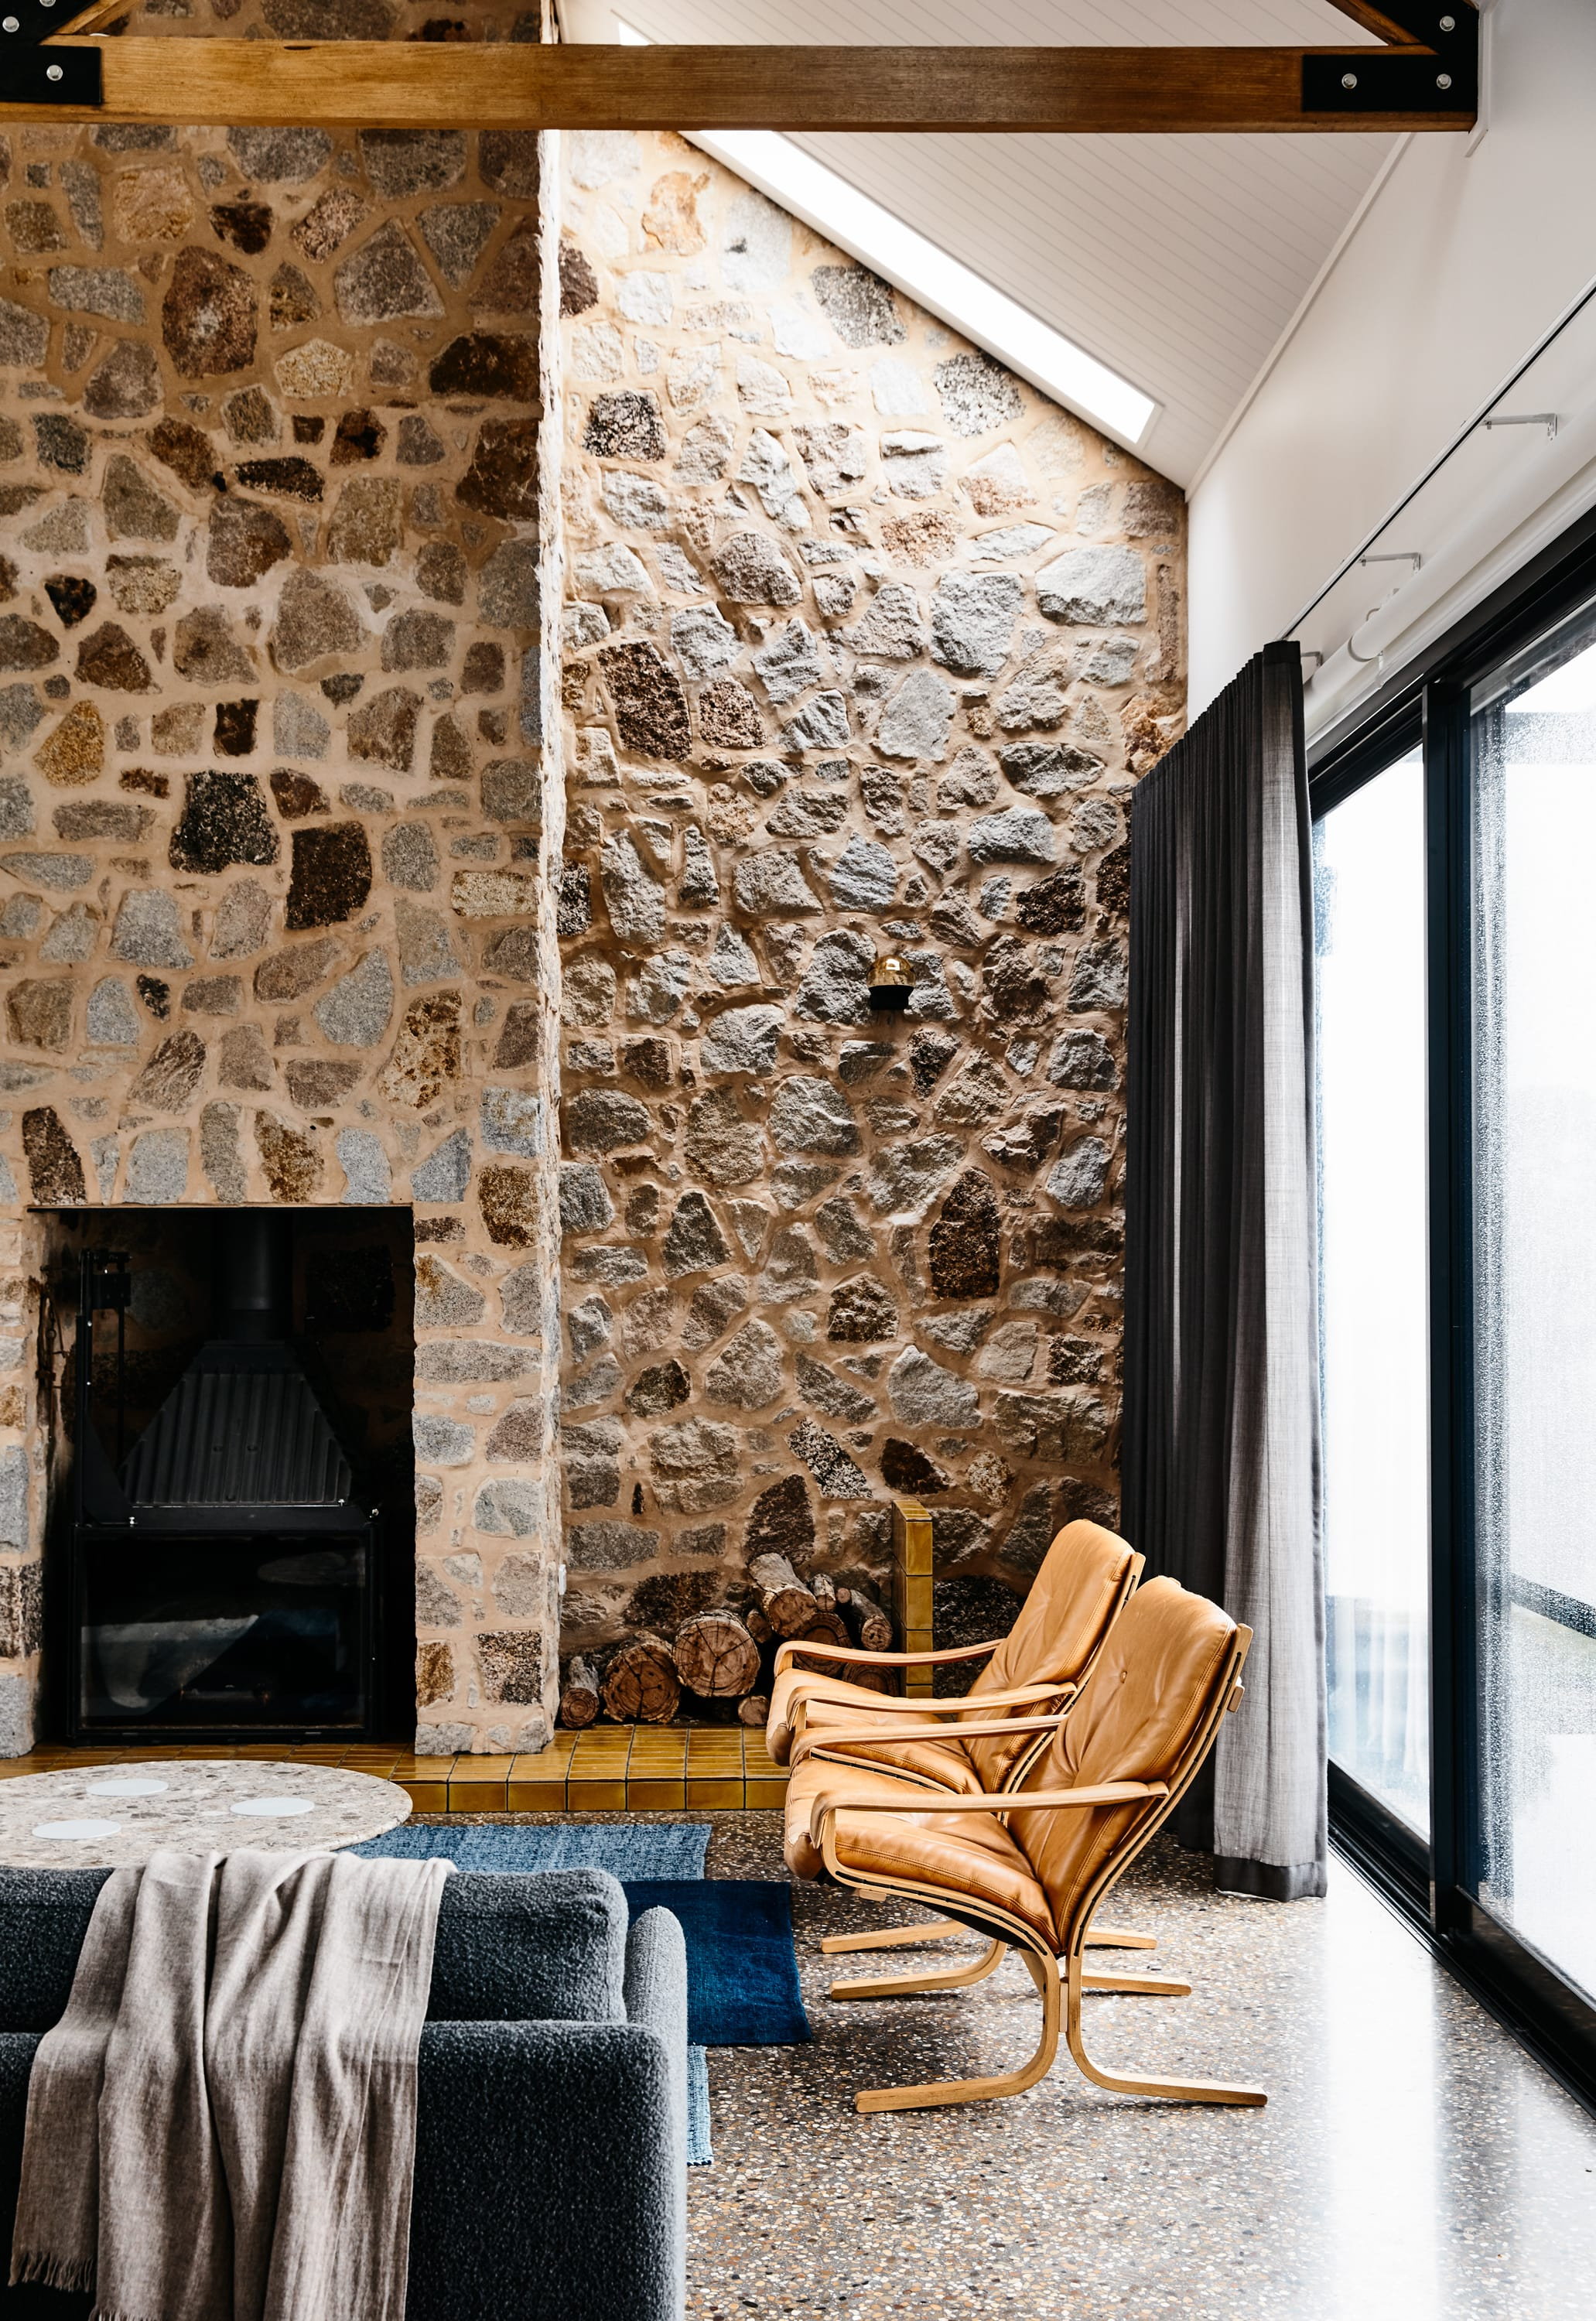 Gallery Of Beechworth Residence By Doherty Design Studio Local Residential Interiors & Architecture Beechworth, Vic Image 13